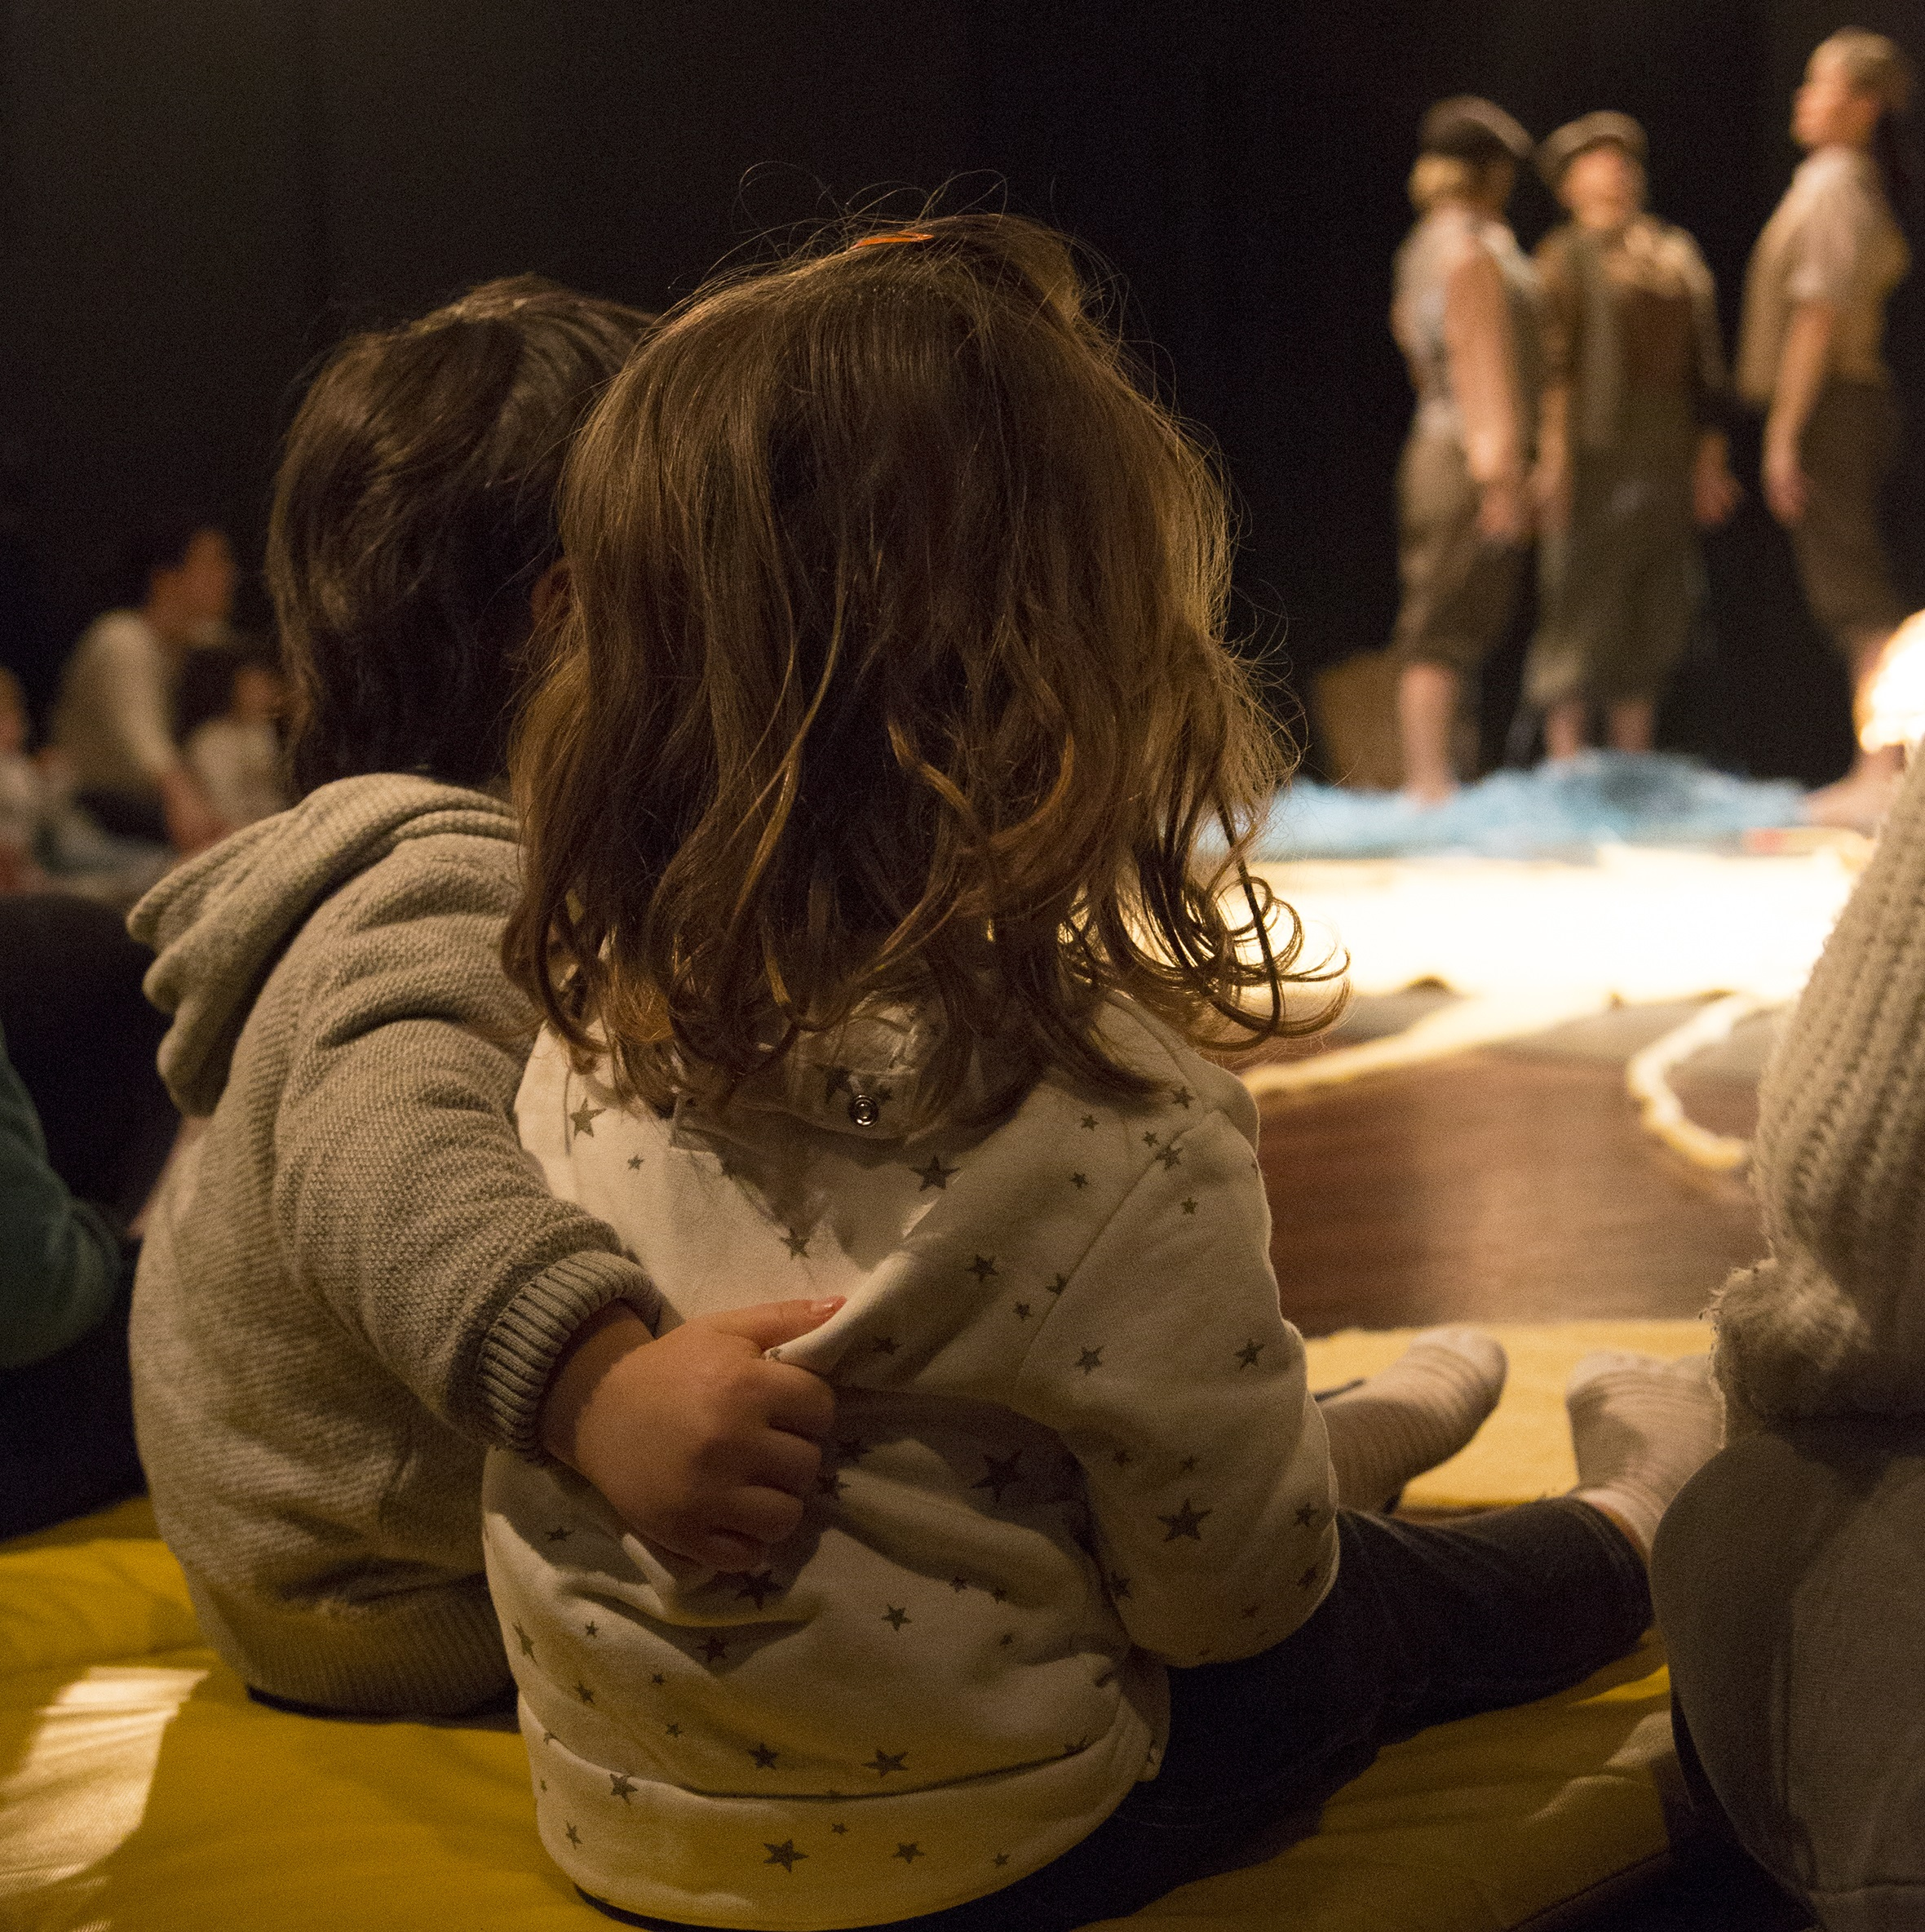 SHOWS, CONCERTS AND WORKSHOPS FOR CHILDHOOD - Visioni di futuro, visioni di teatro...